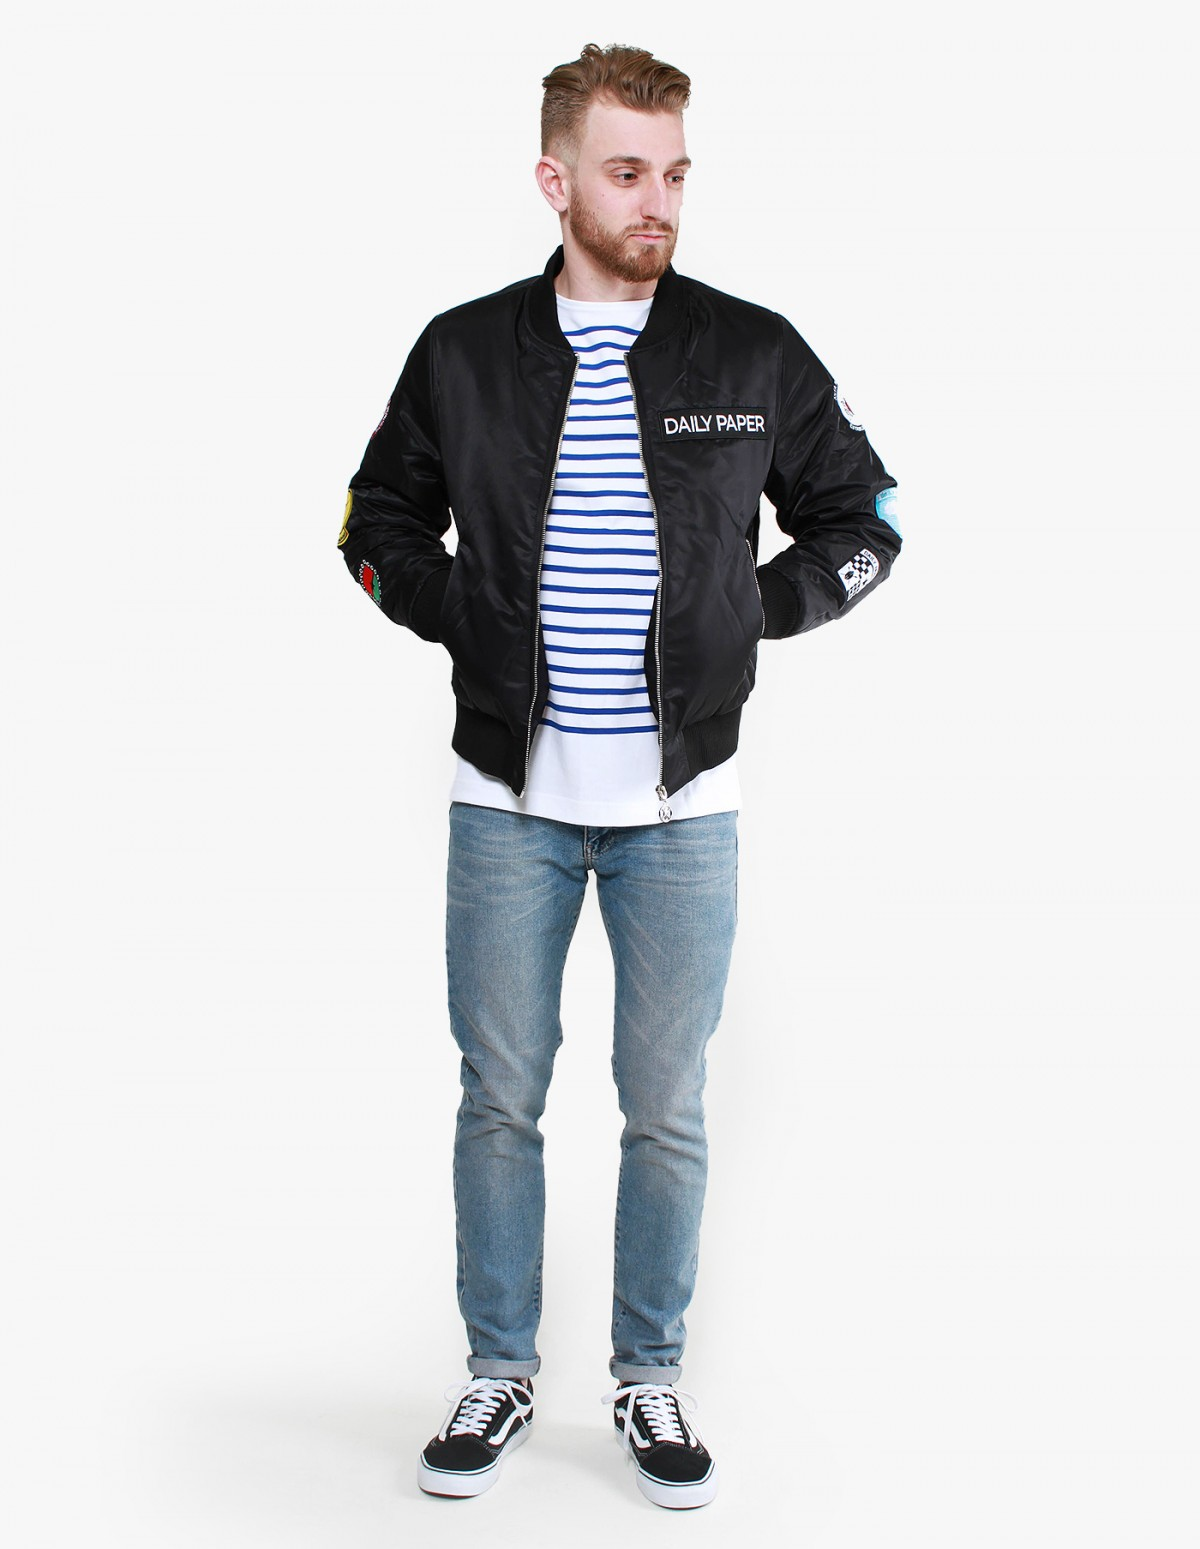 Daily Paper Patched Bomber in Black